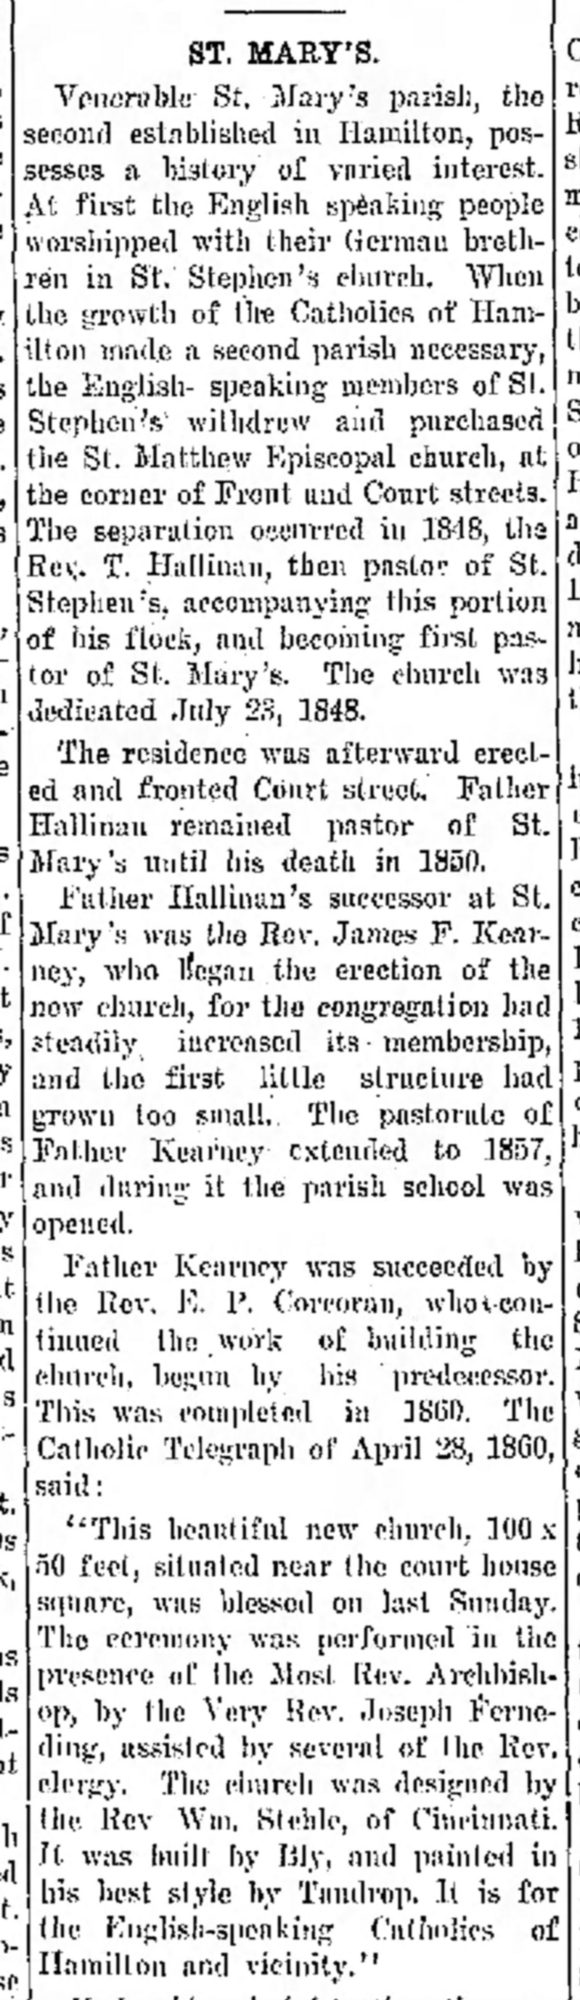 1911-12-20 Hamilton Evening Journal (Hamilton, Ohio) Wed p45 Painted by Tandrop, clipping